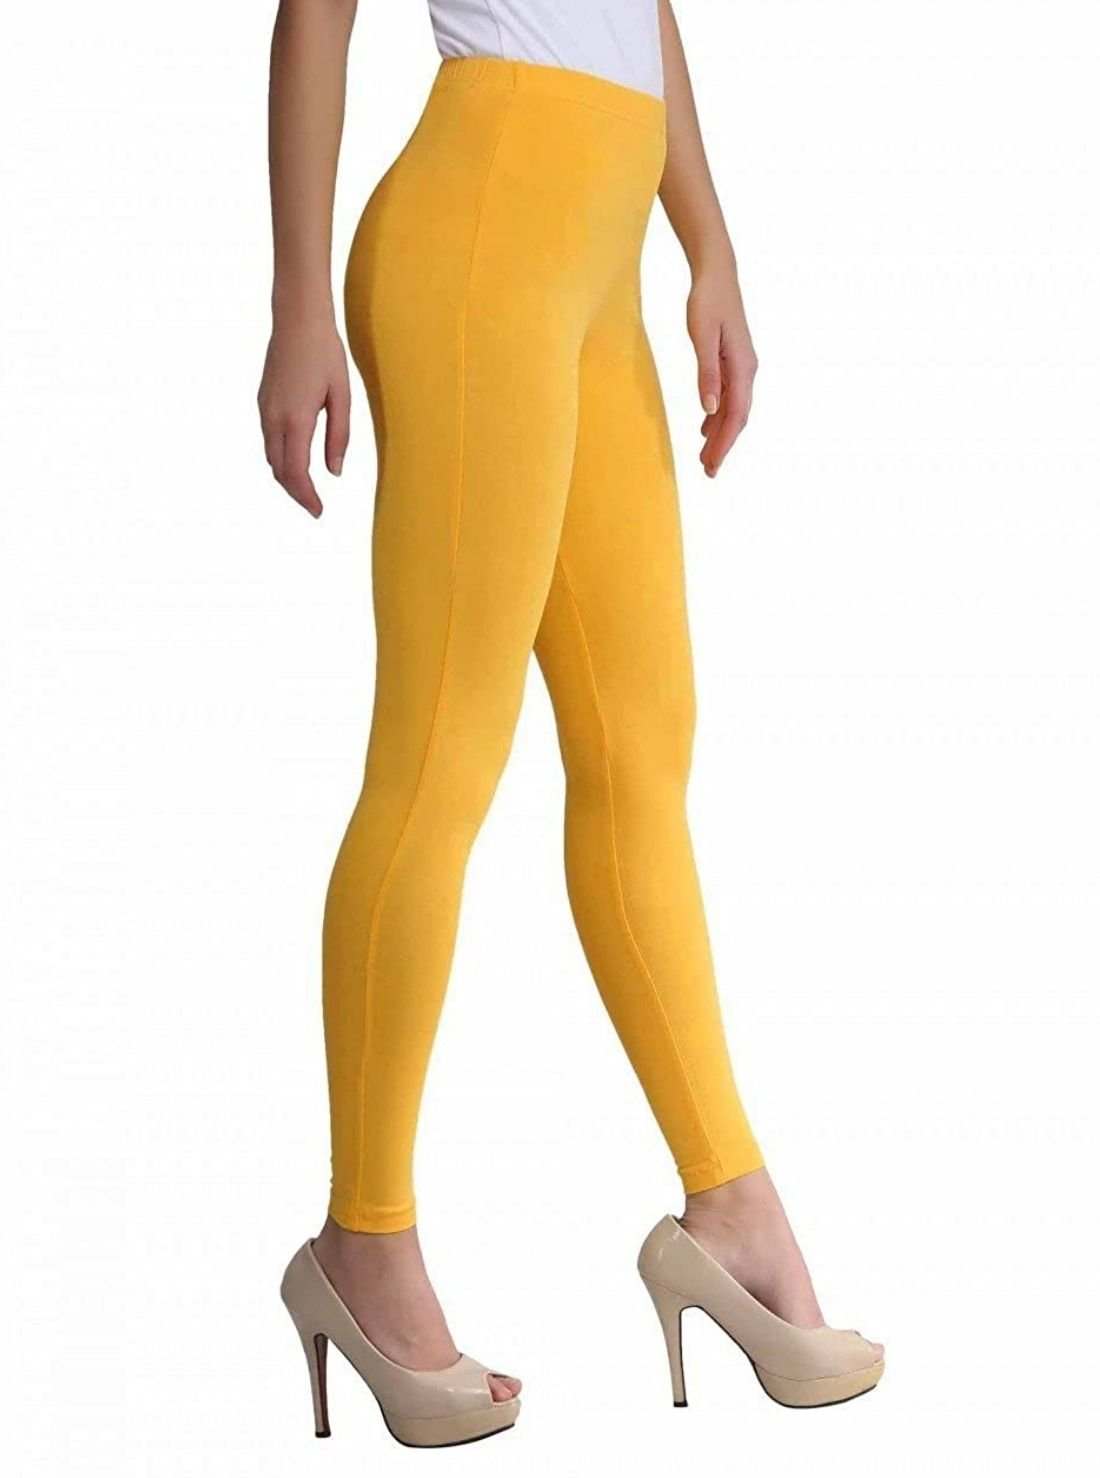 Lady Touch Ankle Length Leggings